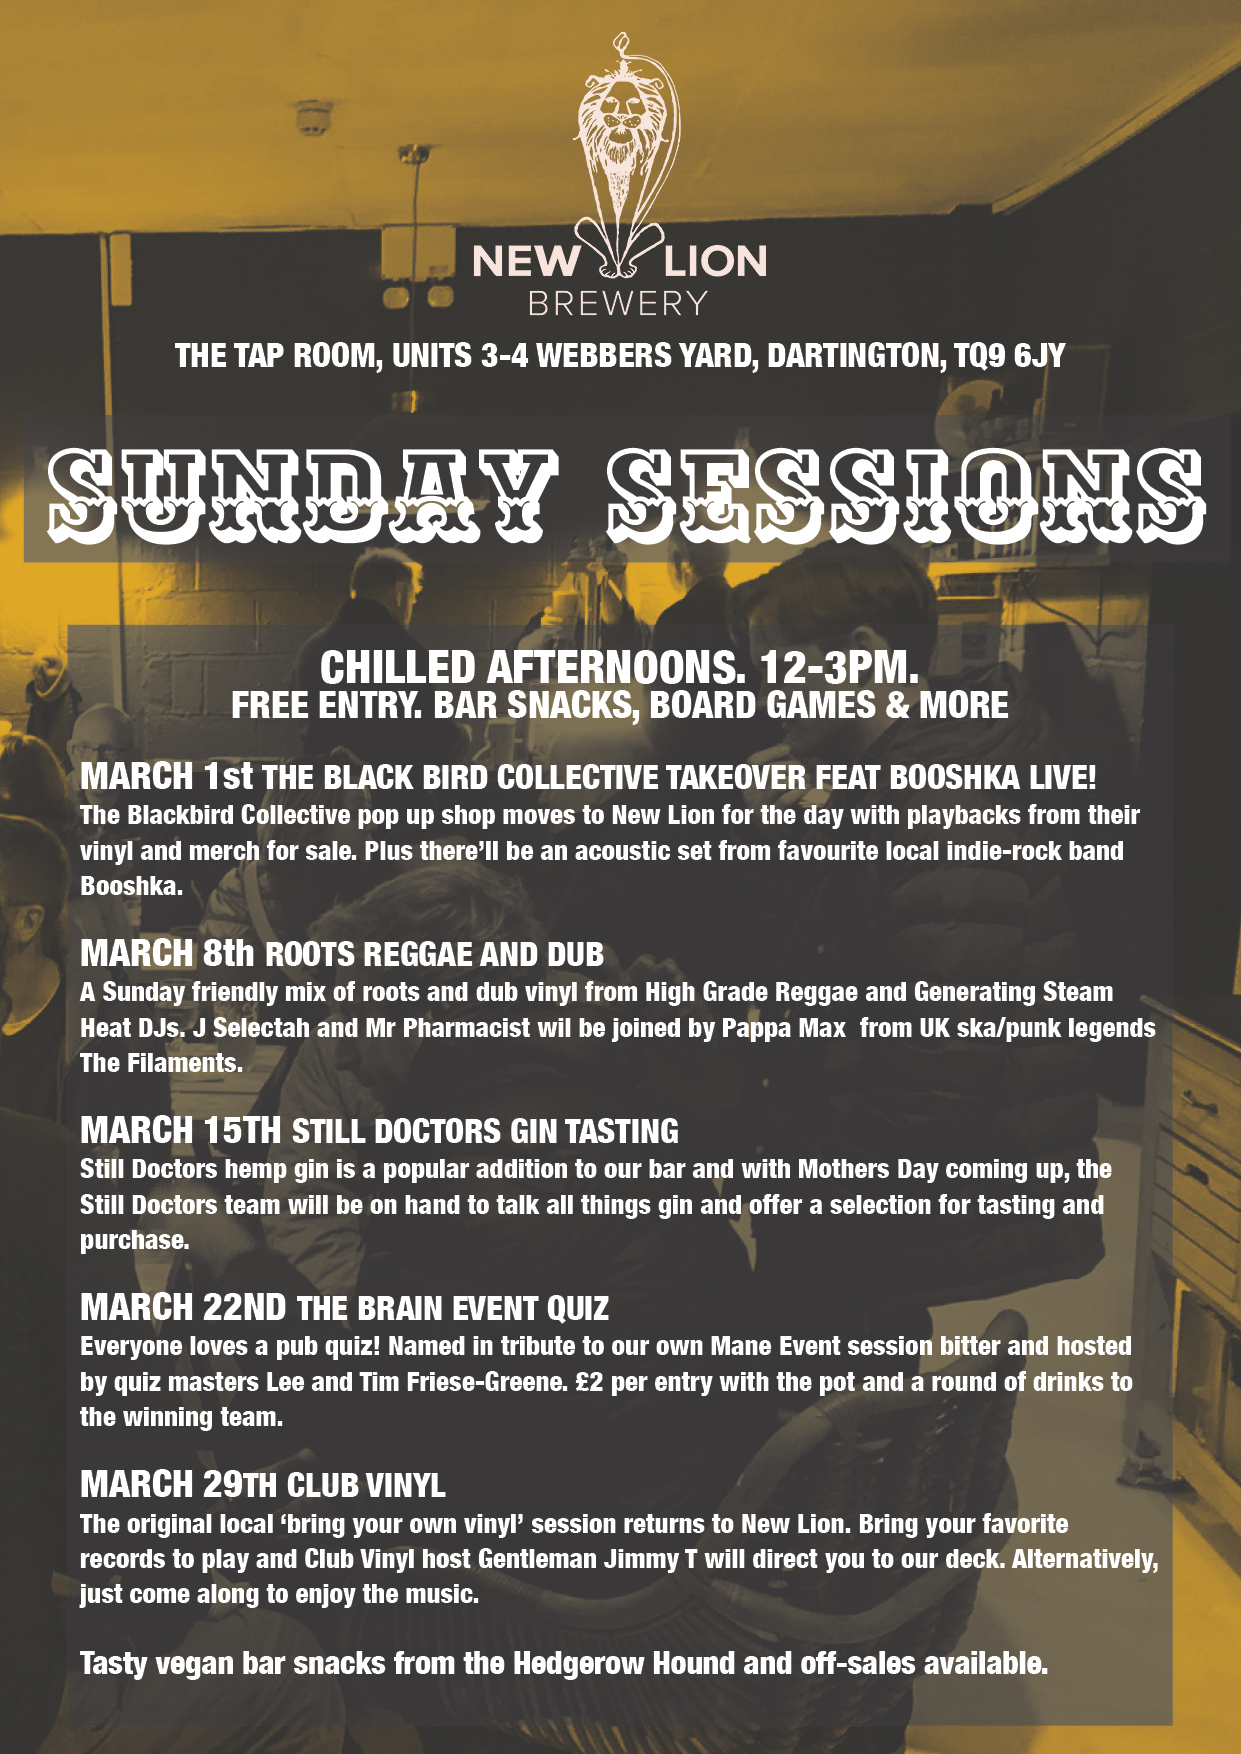 New Lion Brewery Sunday Sessions